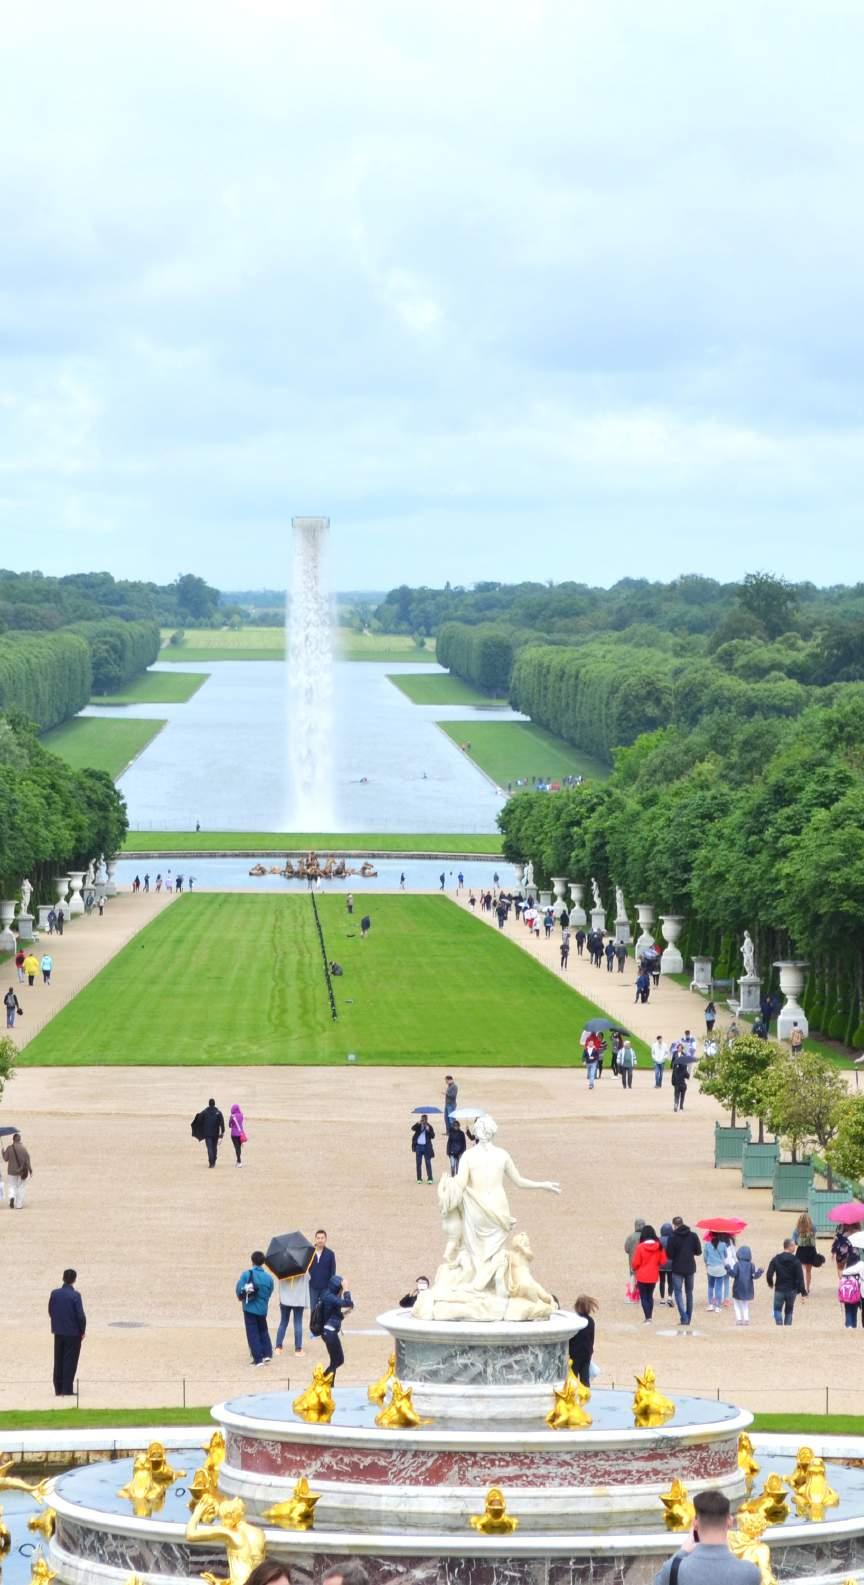 In the Gardens of Versailles sits the Latona